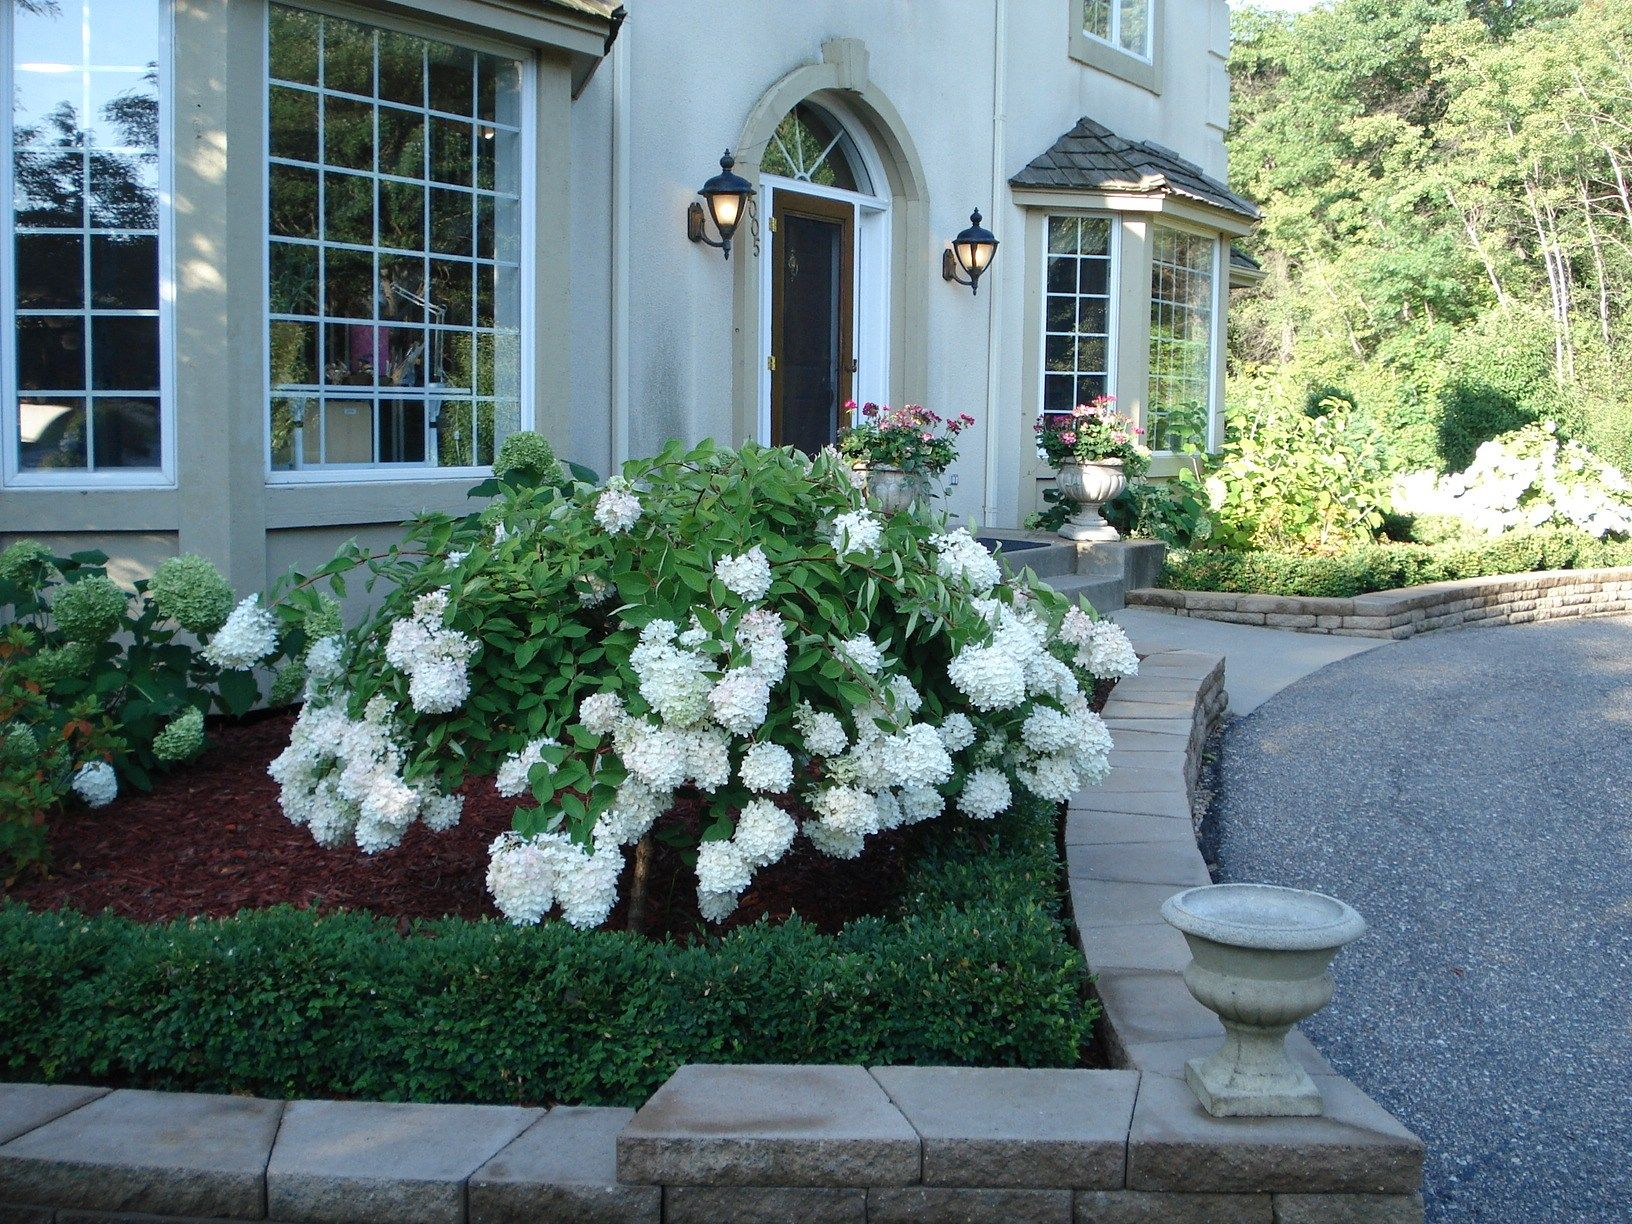 Landscaping Contractor Shakopee Mn And Landscaping Shakopee Mn Landscape Landscape Design Plants